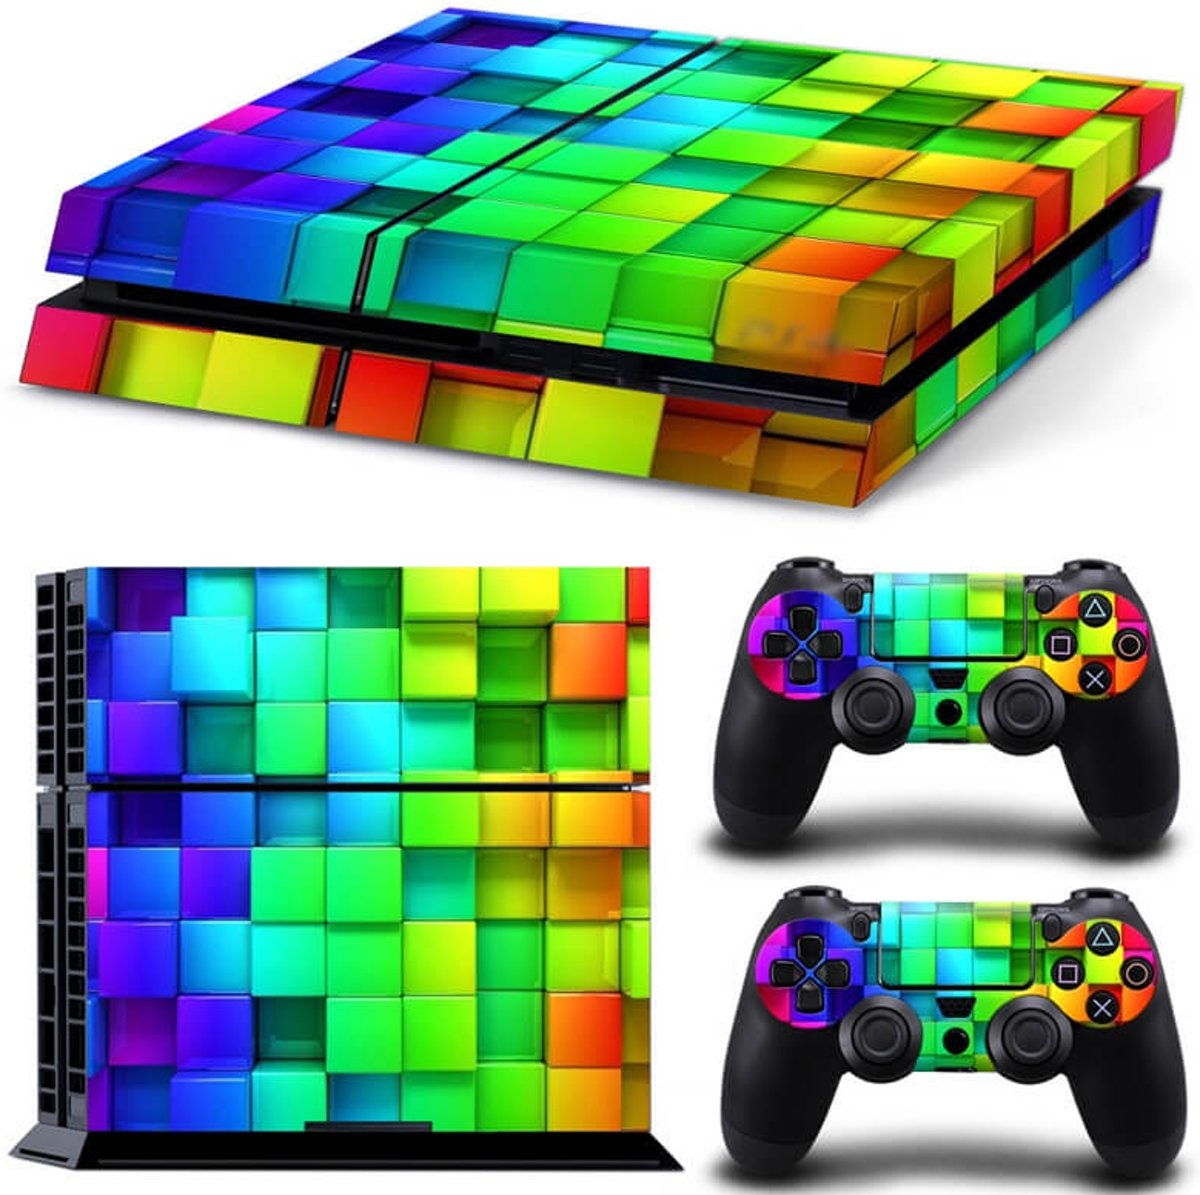 Cubes - PS4 skin